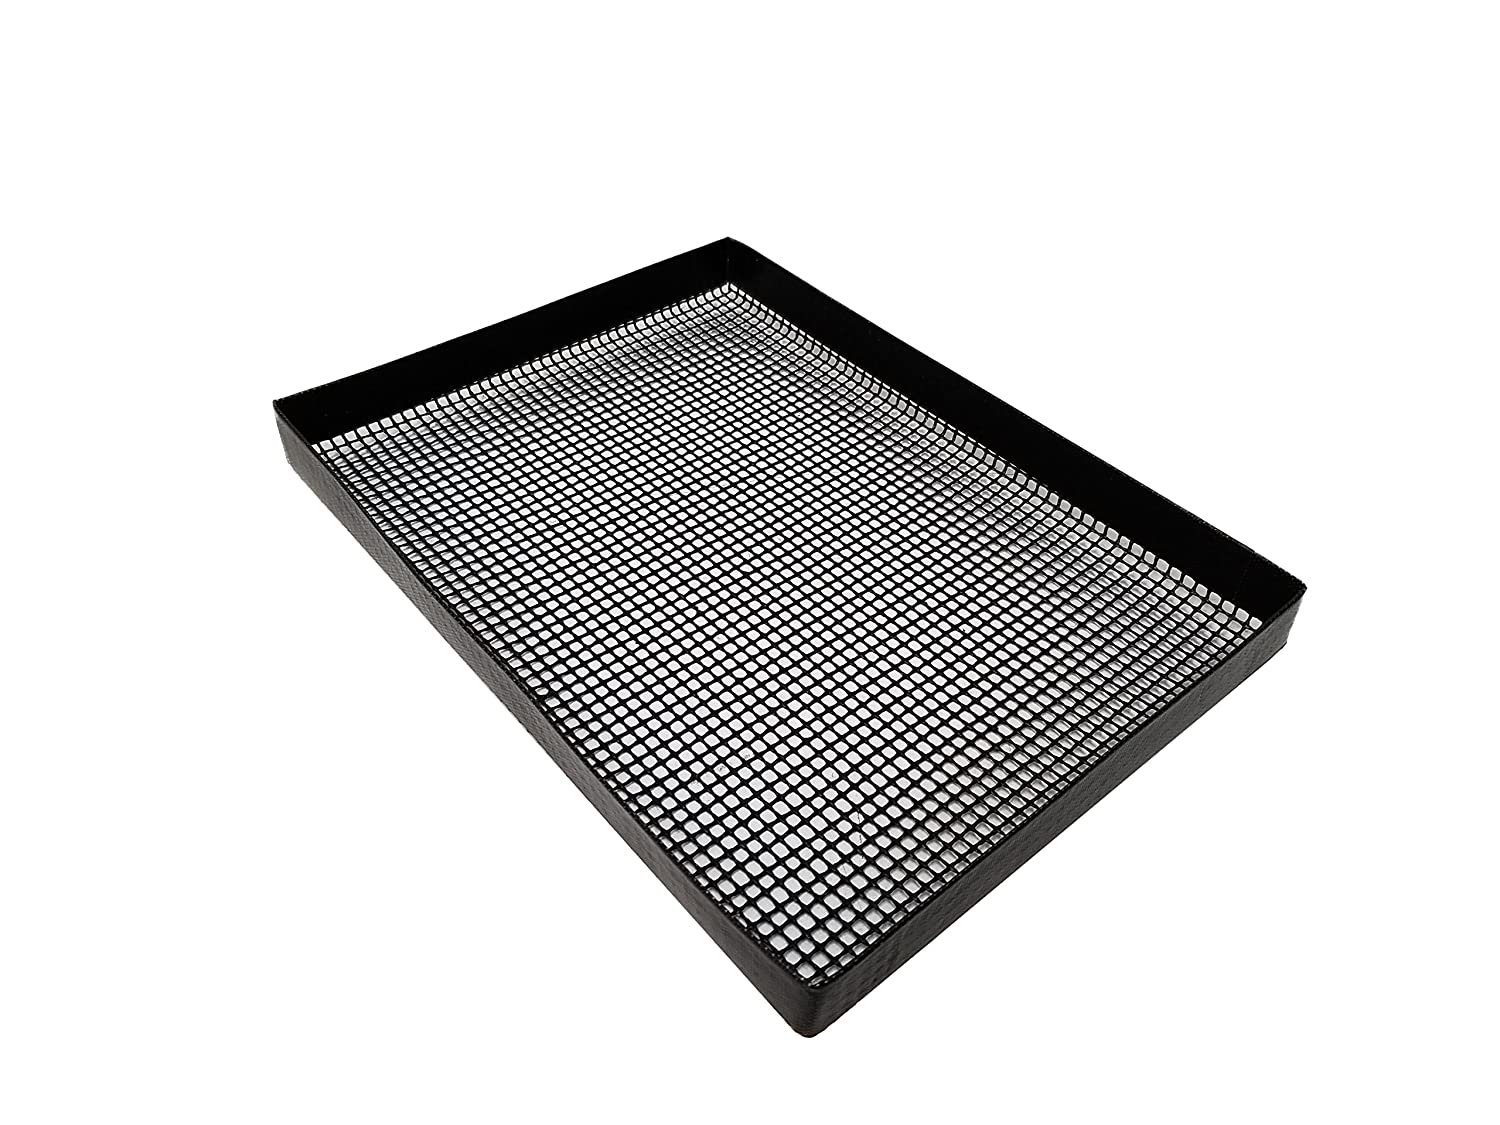 """8.5"""" X 11.5"""" PTFE Wide Mesh Oven Basket for TurboChef, Merrychef, and Amana (Replaces P80041)"""